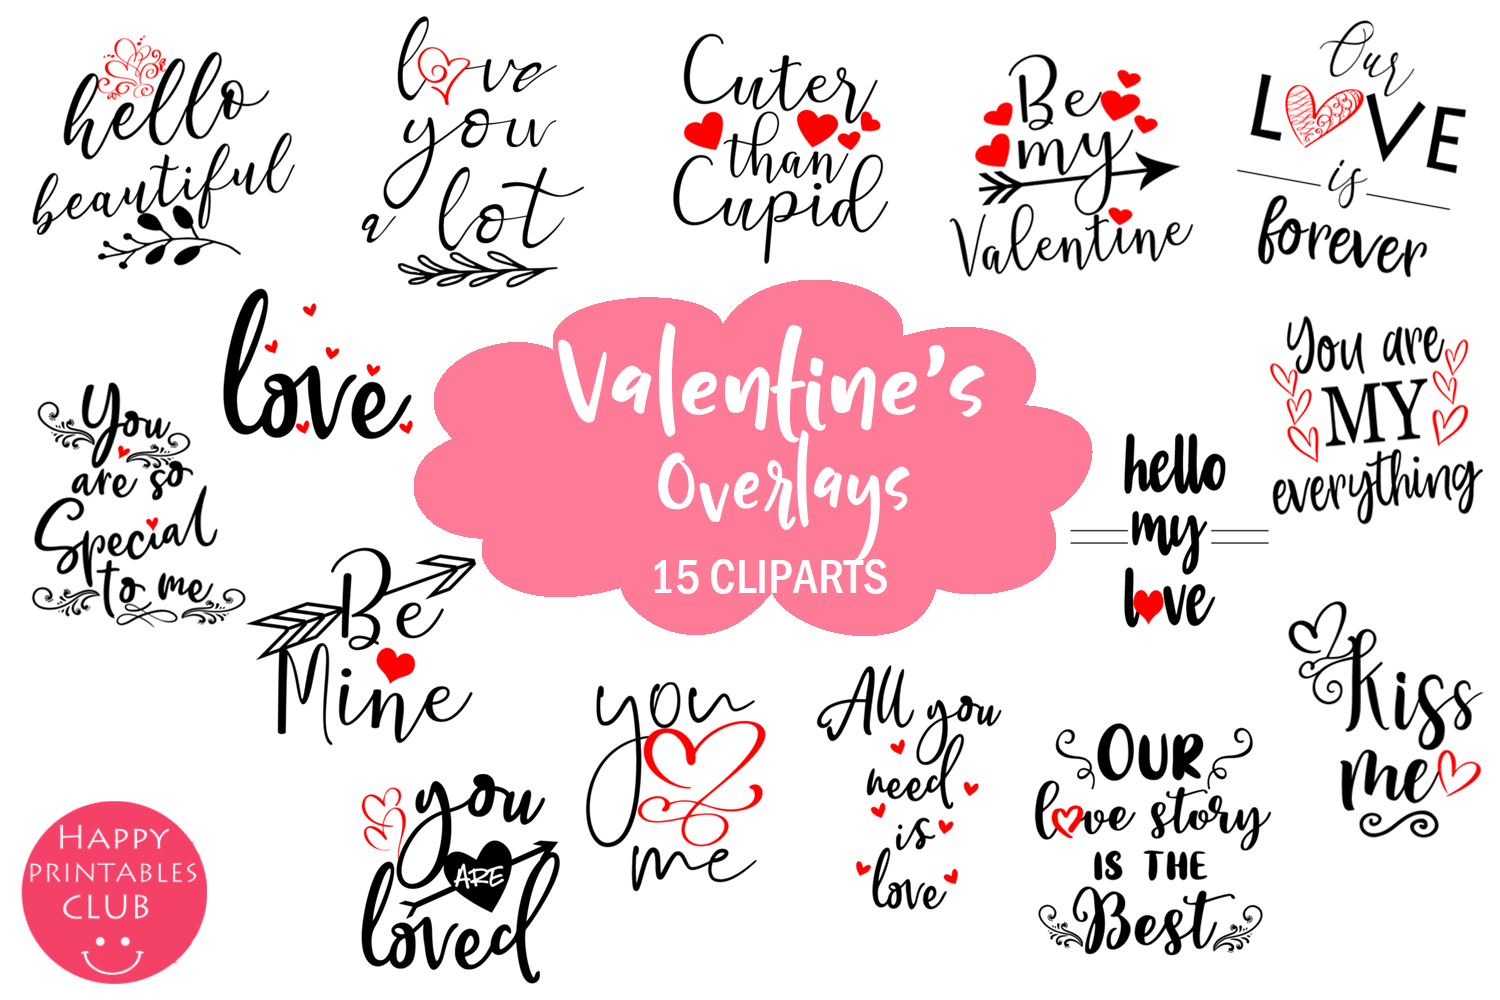 Cute Valentines Overlays Valentines Day Graphic By Happy